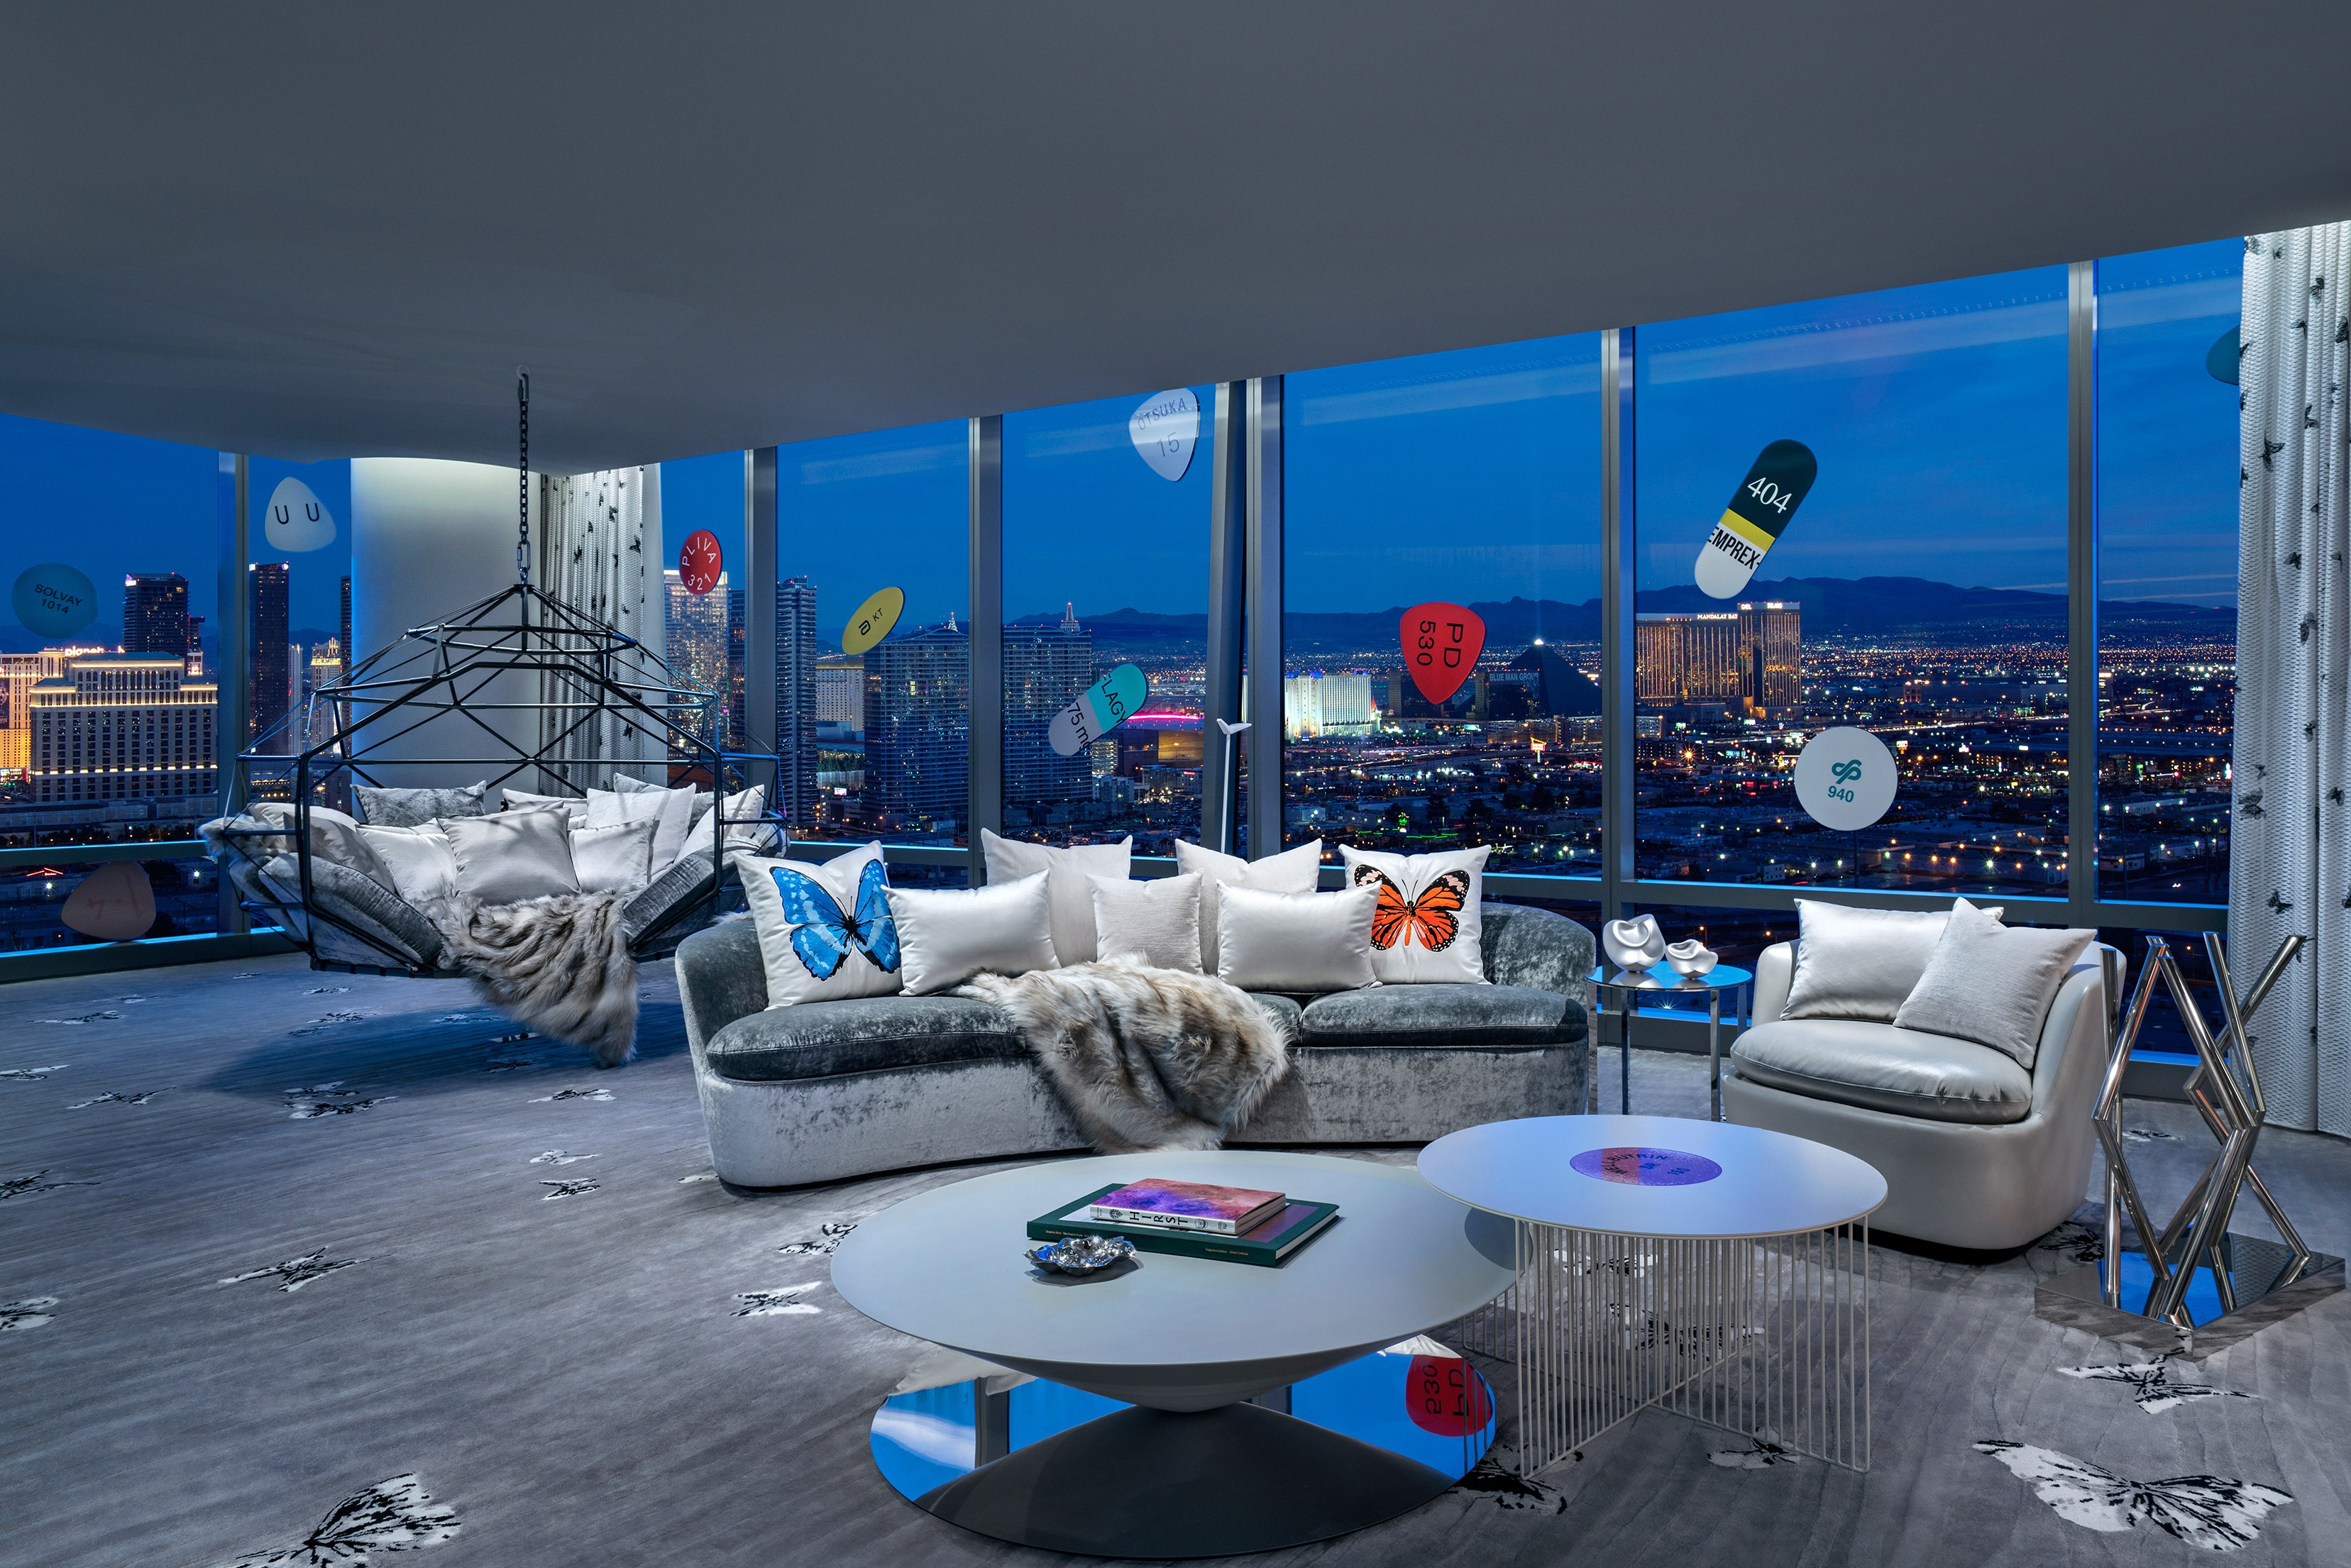 palms-casino-resort_clint-jenkins_2019_upstairs-living-room_1.jpg